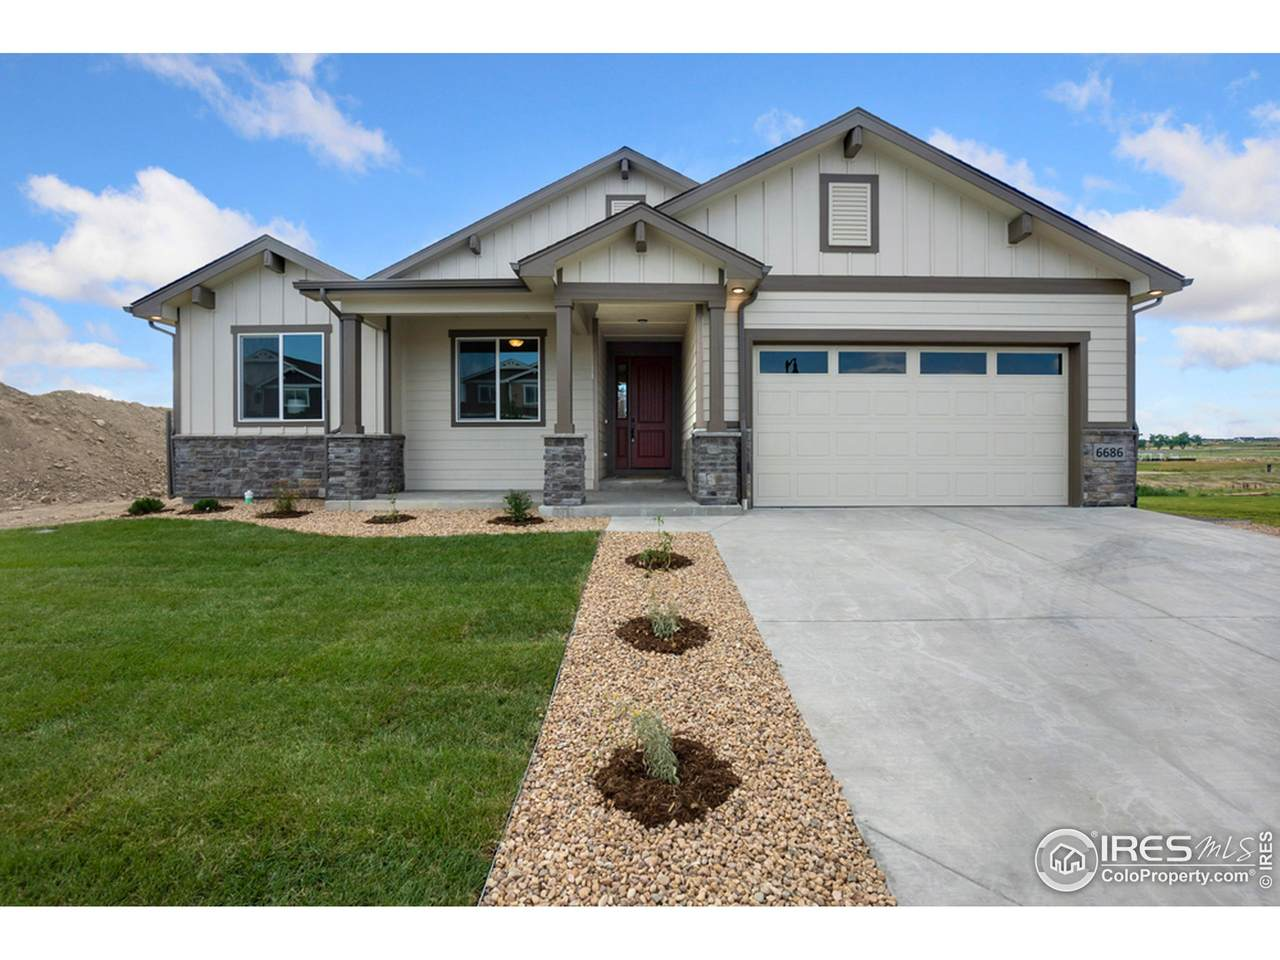 6686 Stone Point Dr - Photo 1